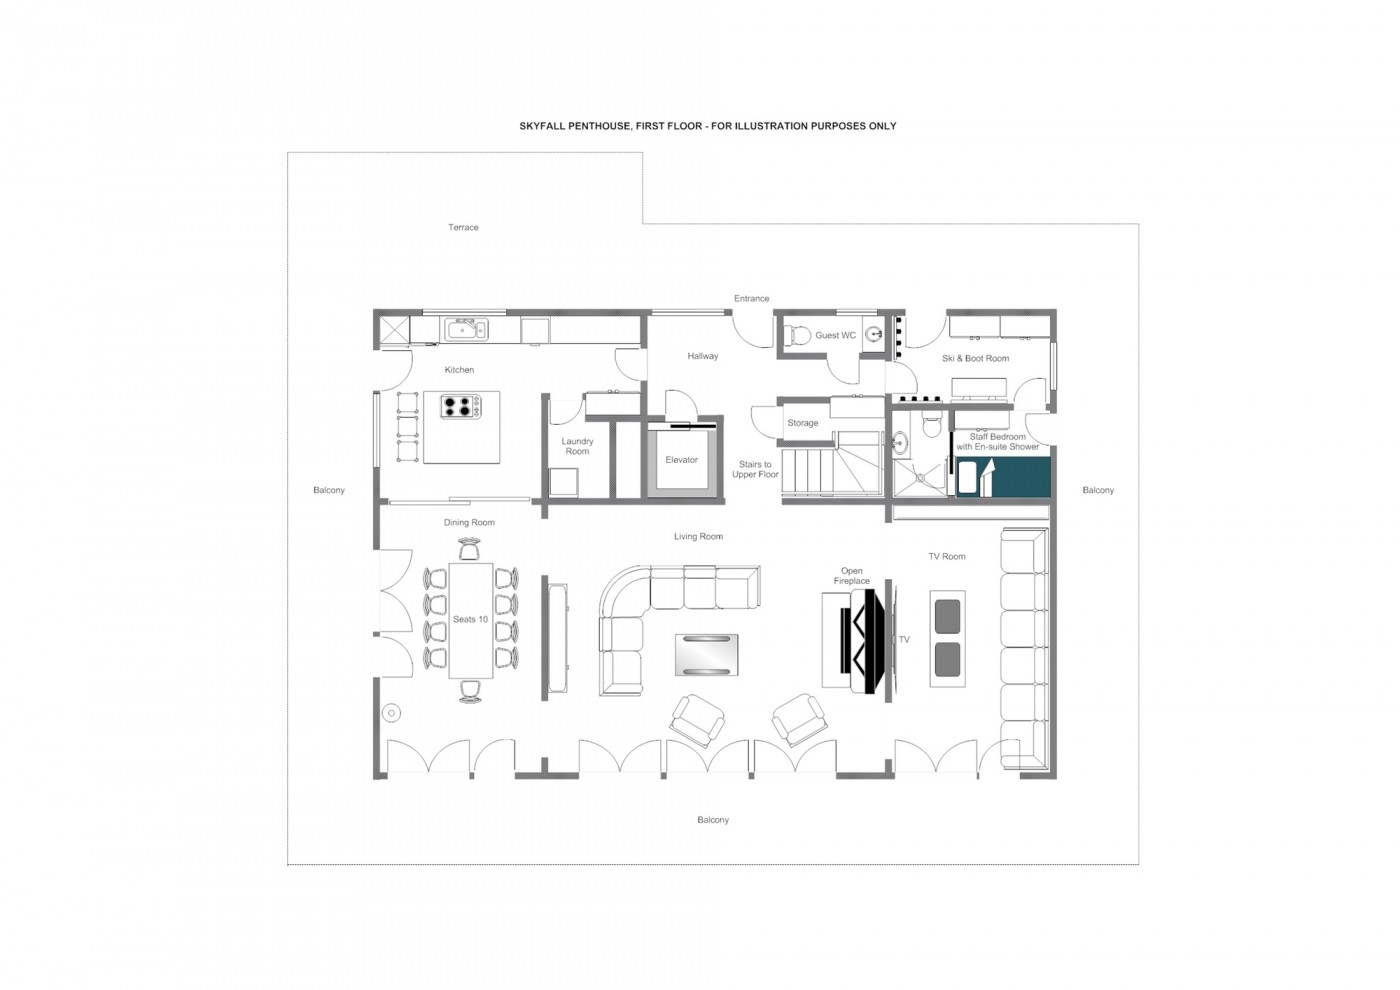 Skyfall Penthouse St Christoph Floor Plan 2